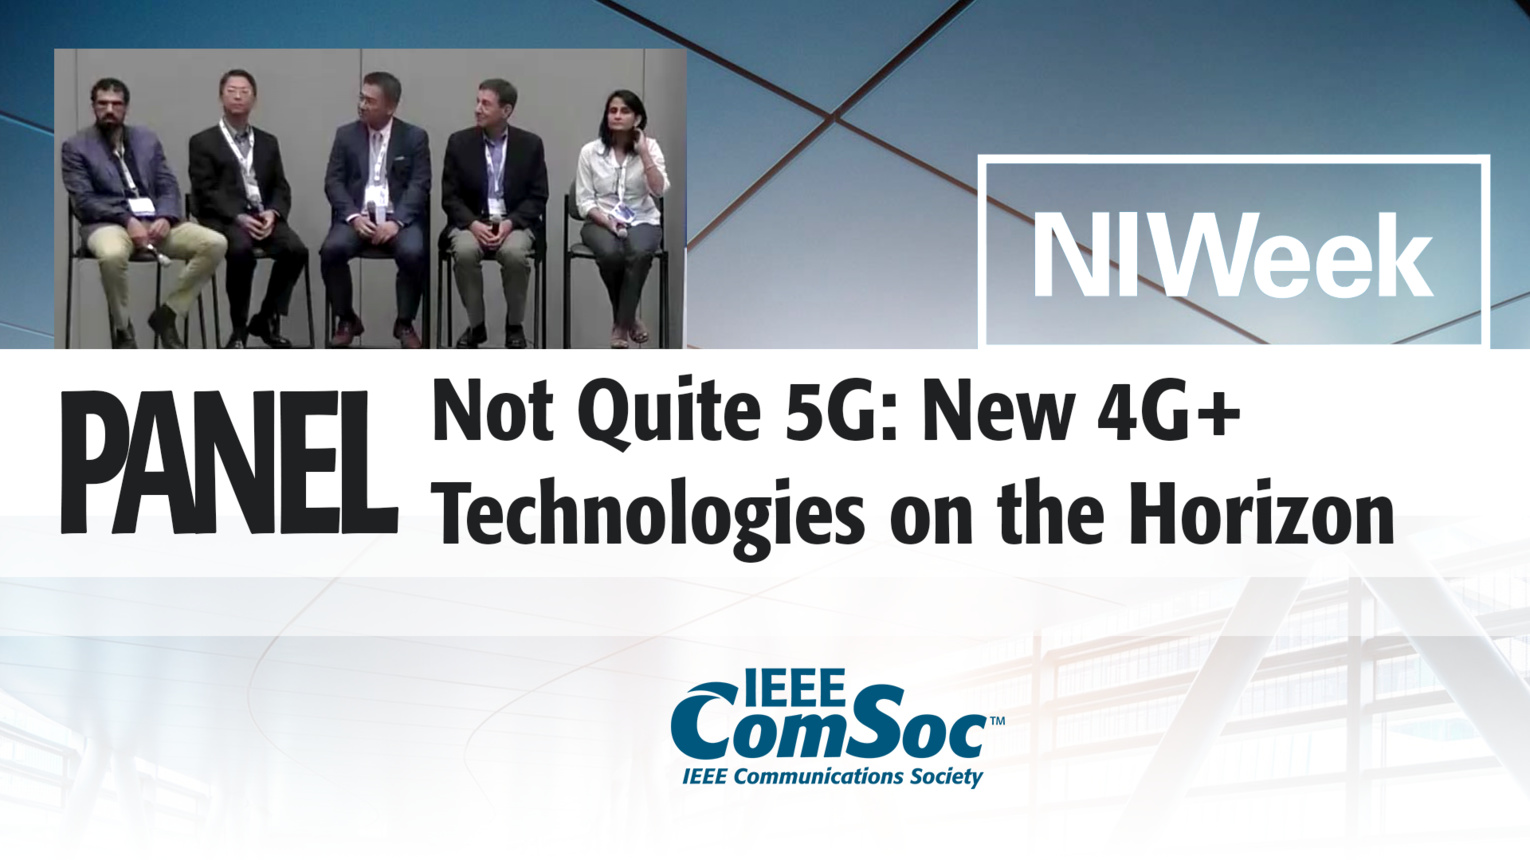 Not Quite 5G: New 4G+ Technologies on the Horizon - Panel from NIWeek 5G Summit